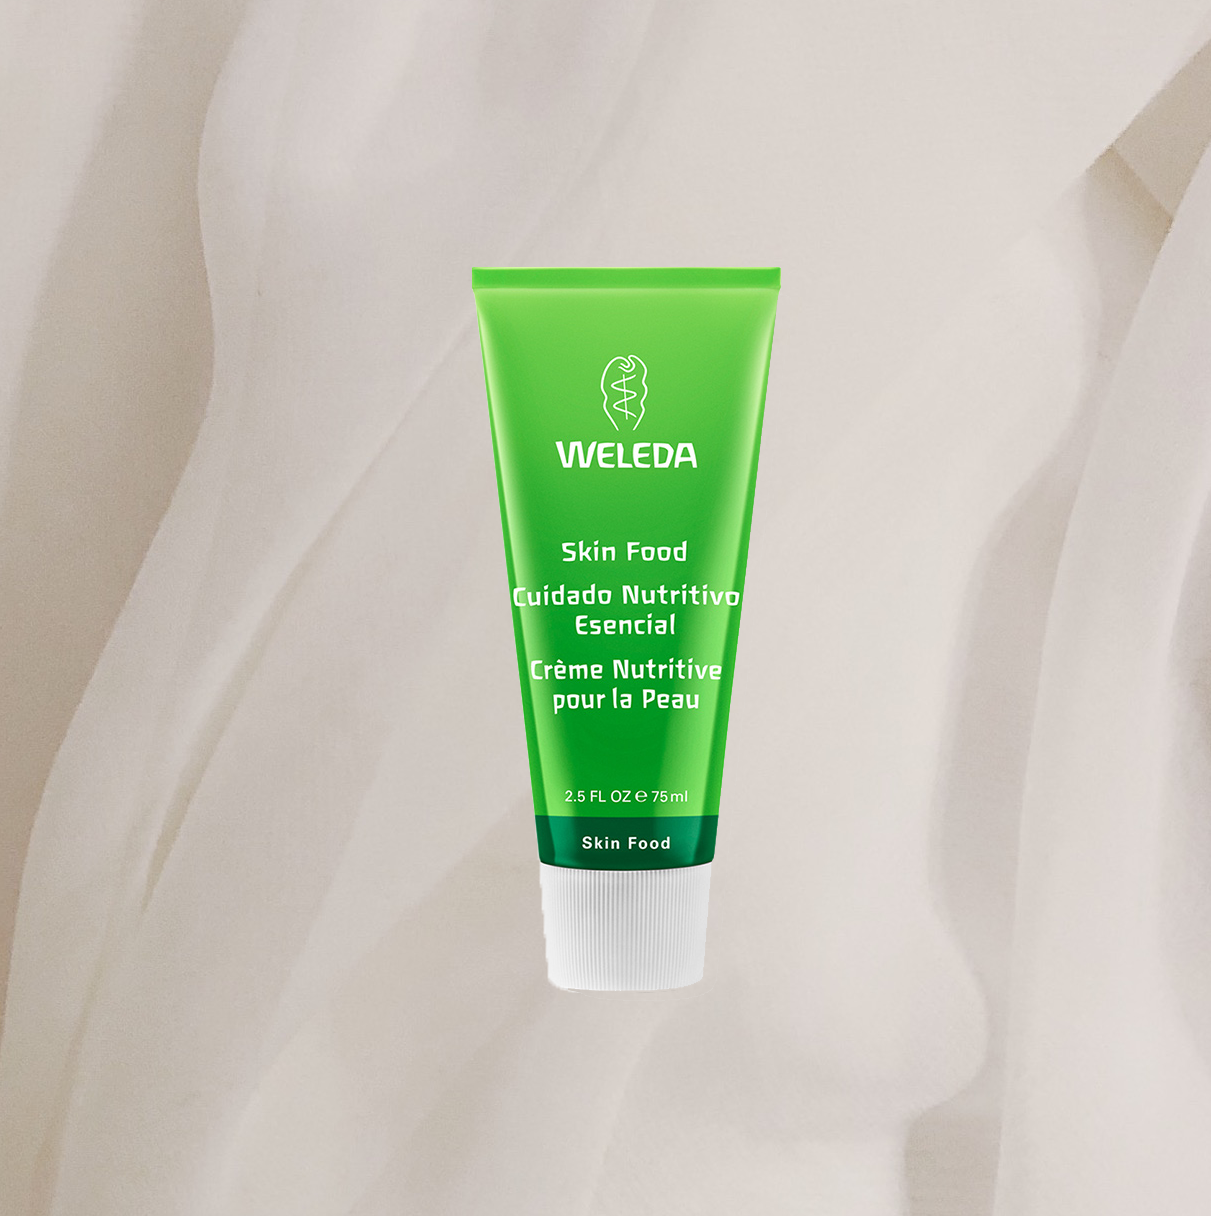 THIS IS THE TRUE RIDE OR DIE FOR DRY SKIN! HONESTLY, NOTHING BEATS   WELEDA SKIN FOOD  ! IT'S THE RICHEST, CREAMIEST, HEAVIEST CREAM EVER AND NO, IT DOESN'T BREAK ME OUT ONE BIT EVEN THOUGH I STRUGGLE WITH THAT. THIS IS A BULLETPROOF MOISTURISER THAT I ALWAYS GO BACK TO BECAUSE IT JUST WORKS. - T